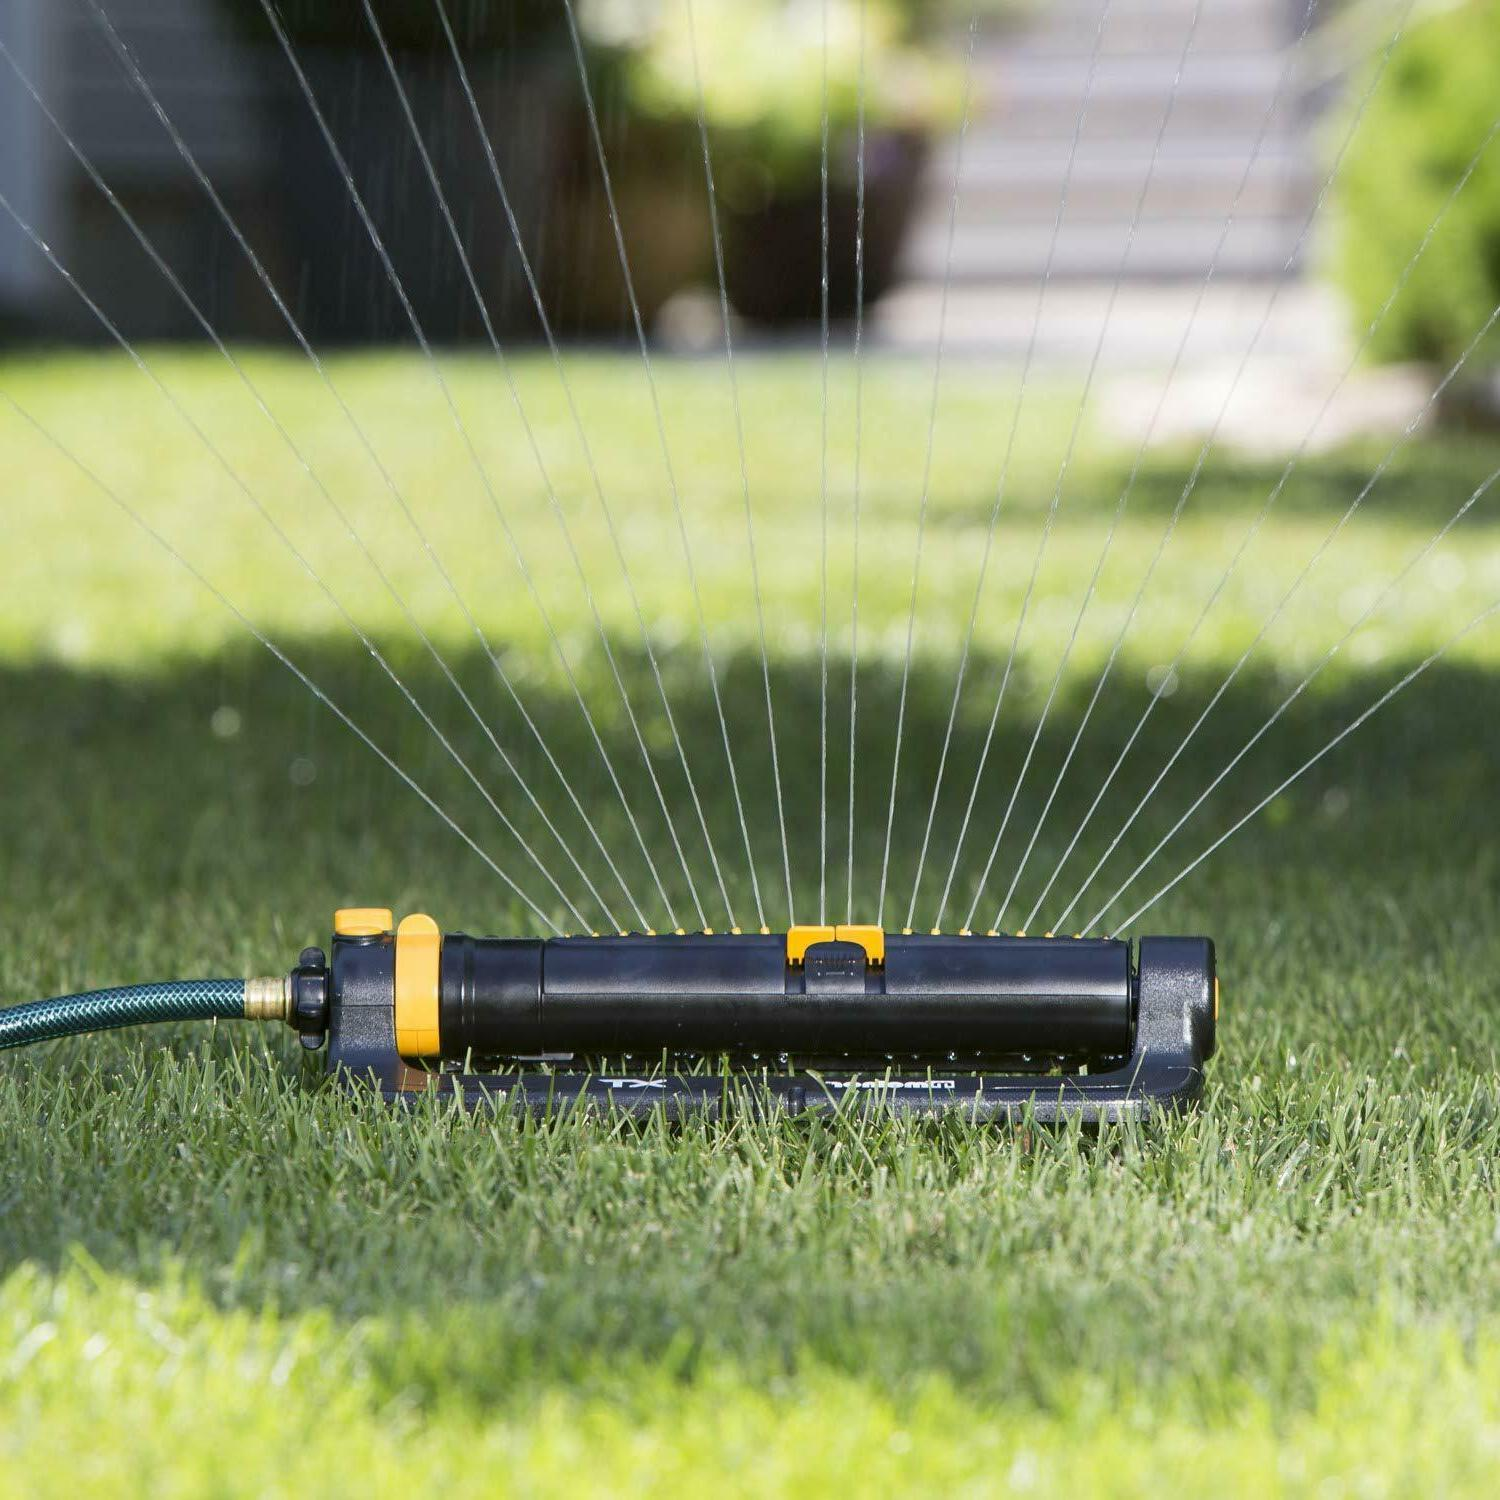 Oscillating Sprinkler Adjustment